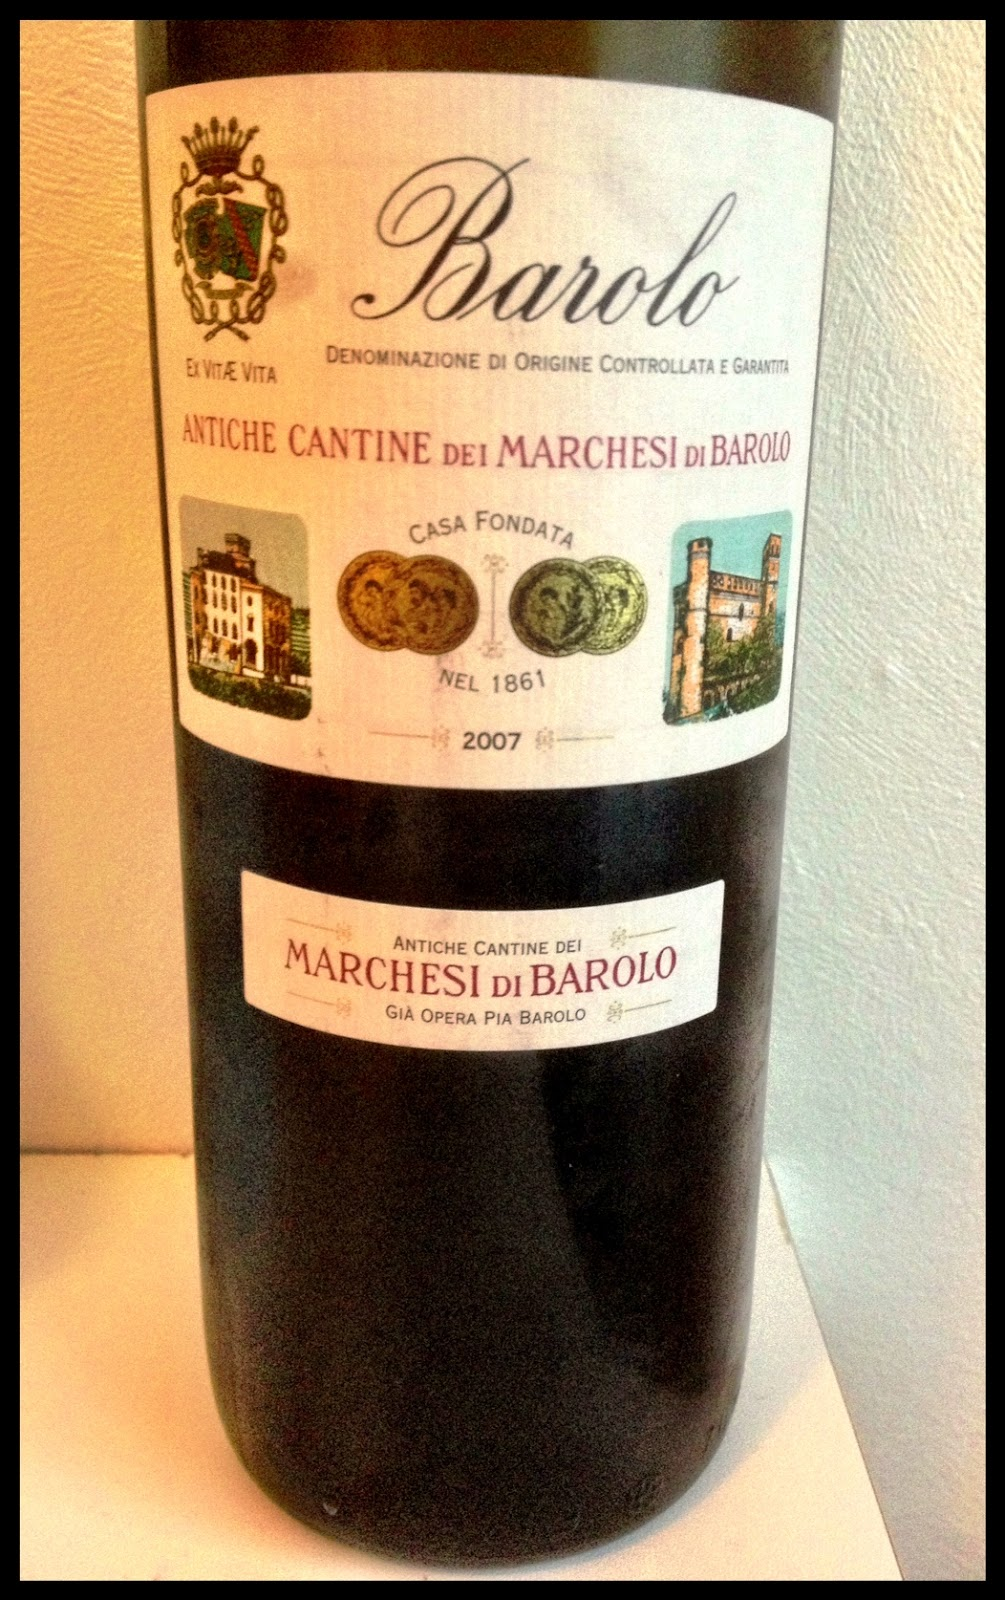 Tasting note on the 2007 Marchesi di Barolo Barolo